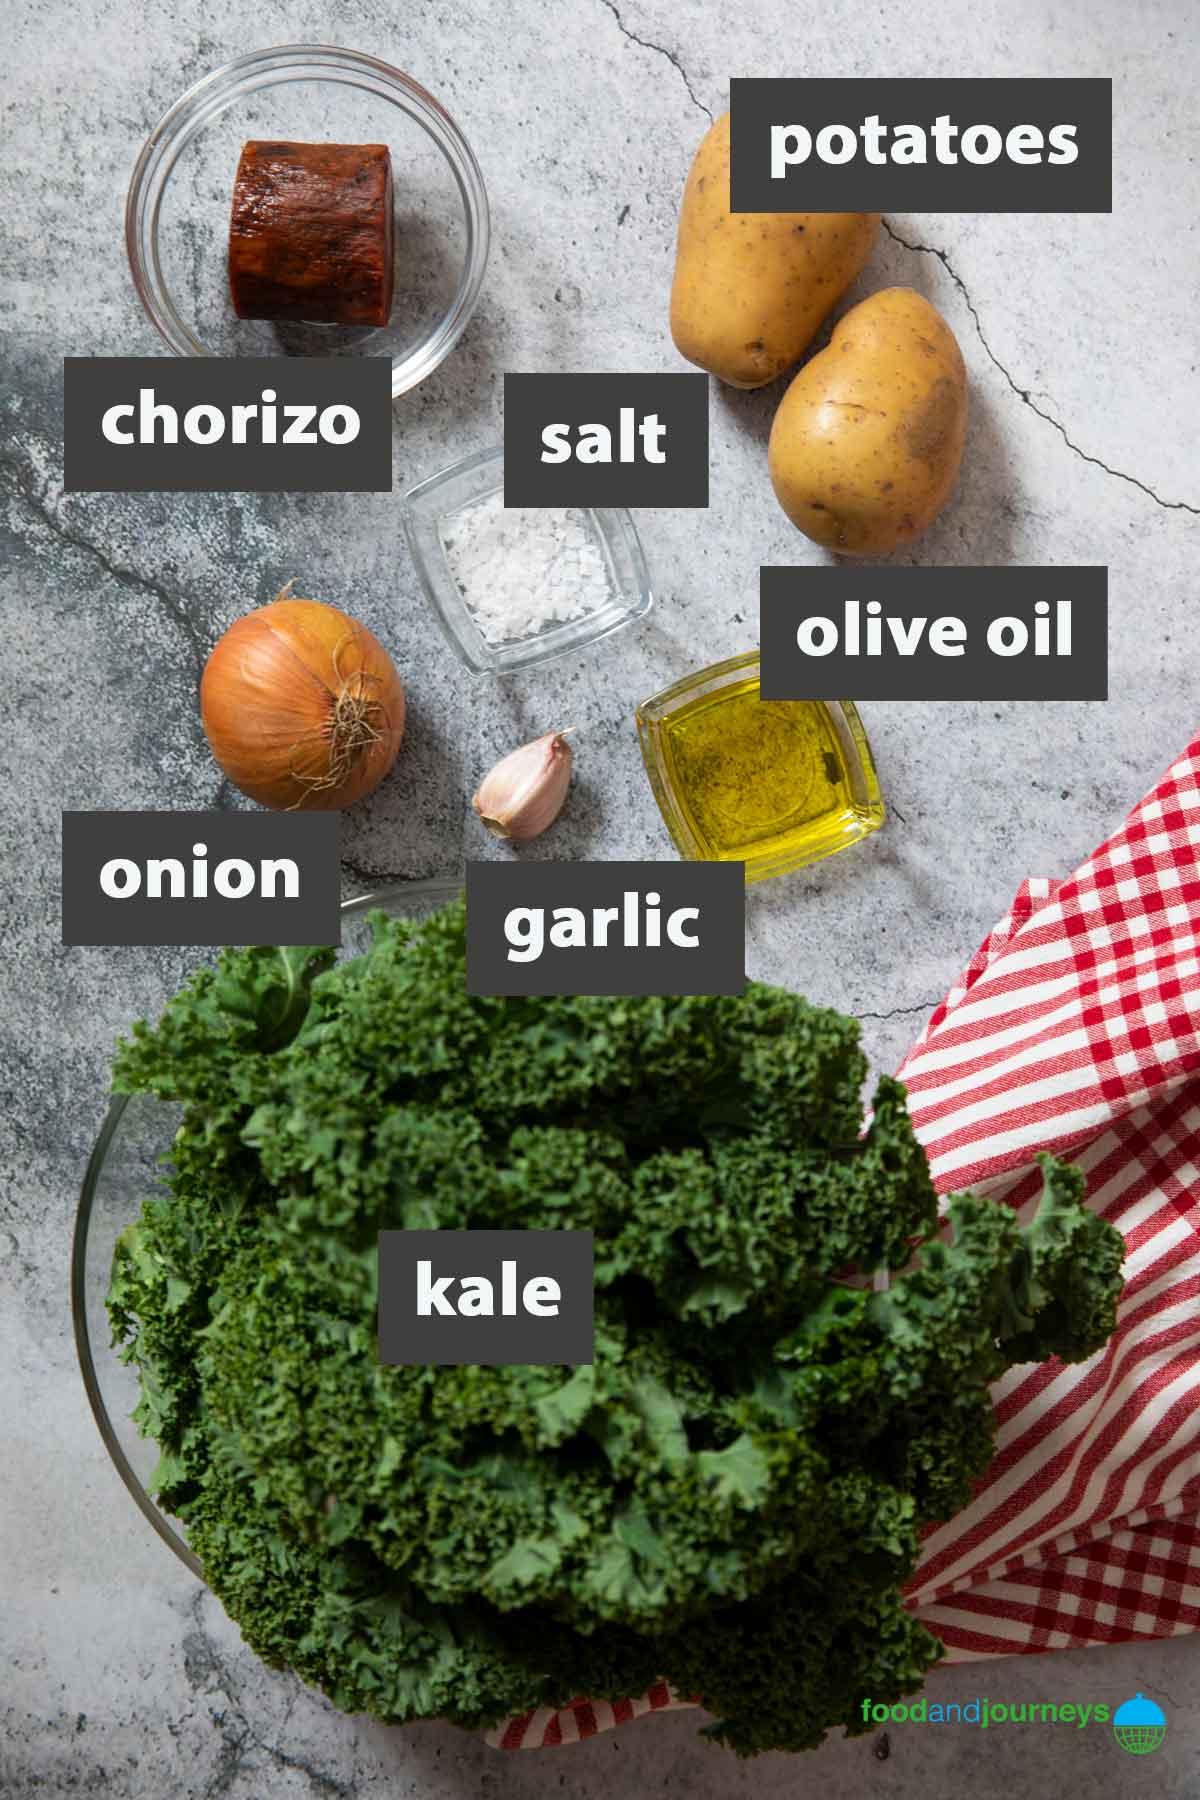 An image showing all the ingredients you need to prepare Portuguese Green Soup at home.